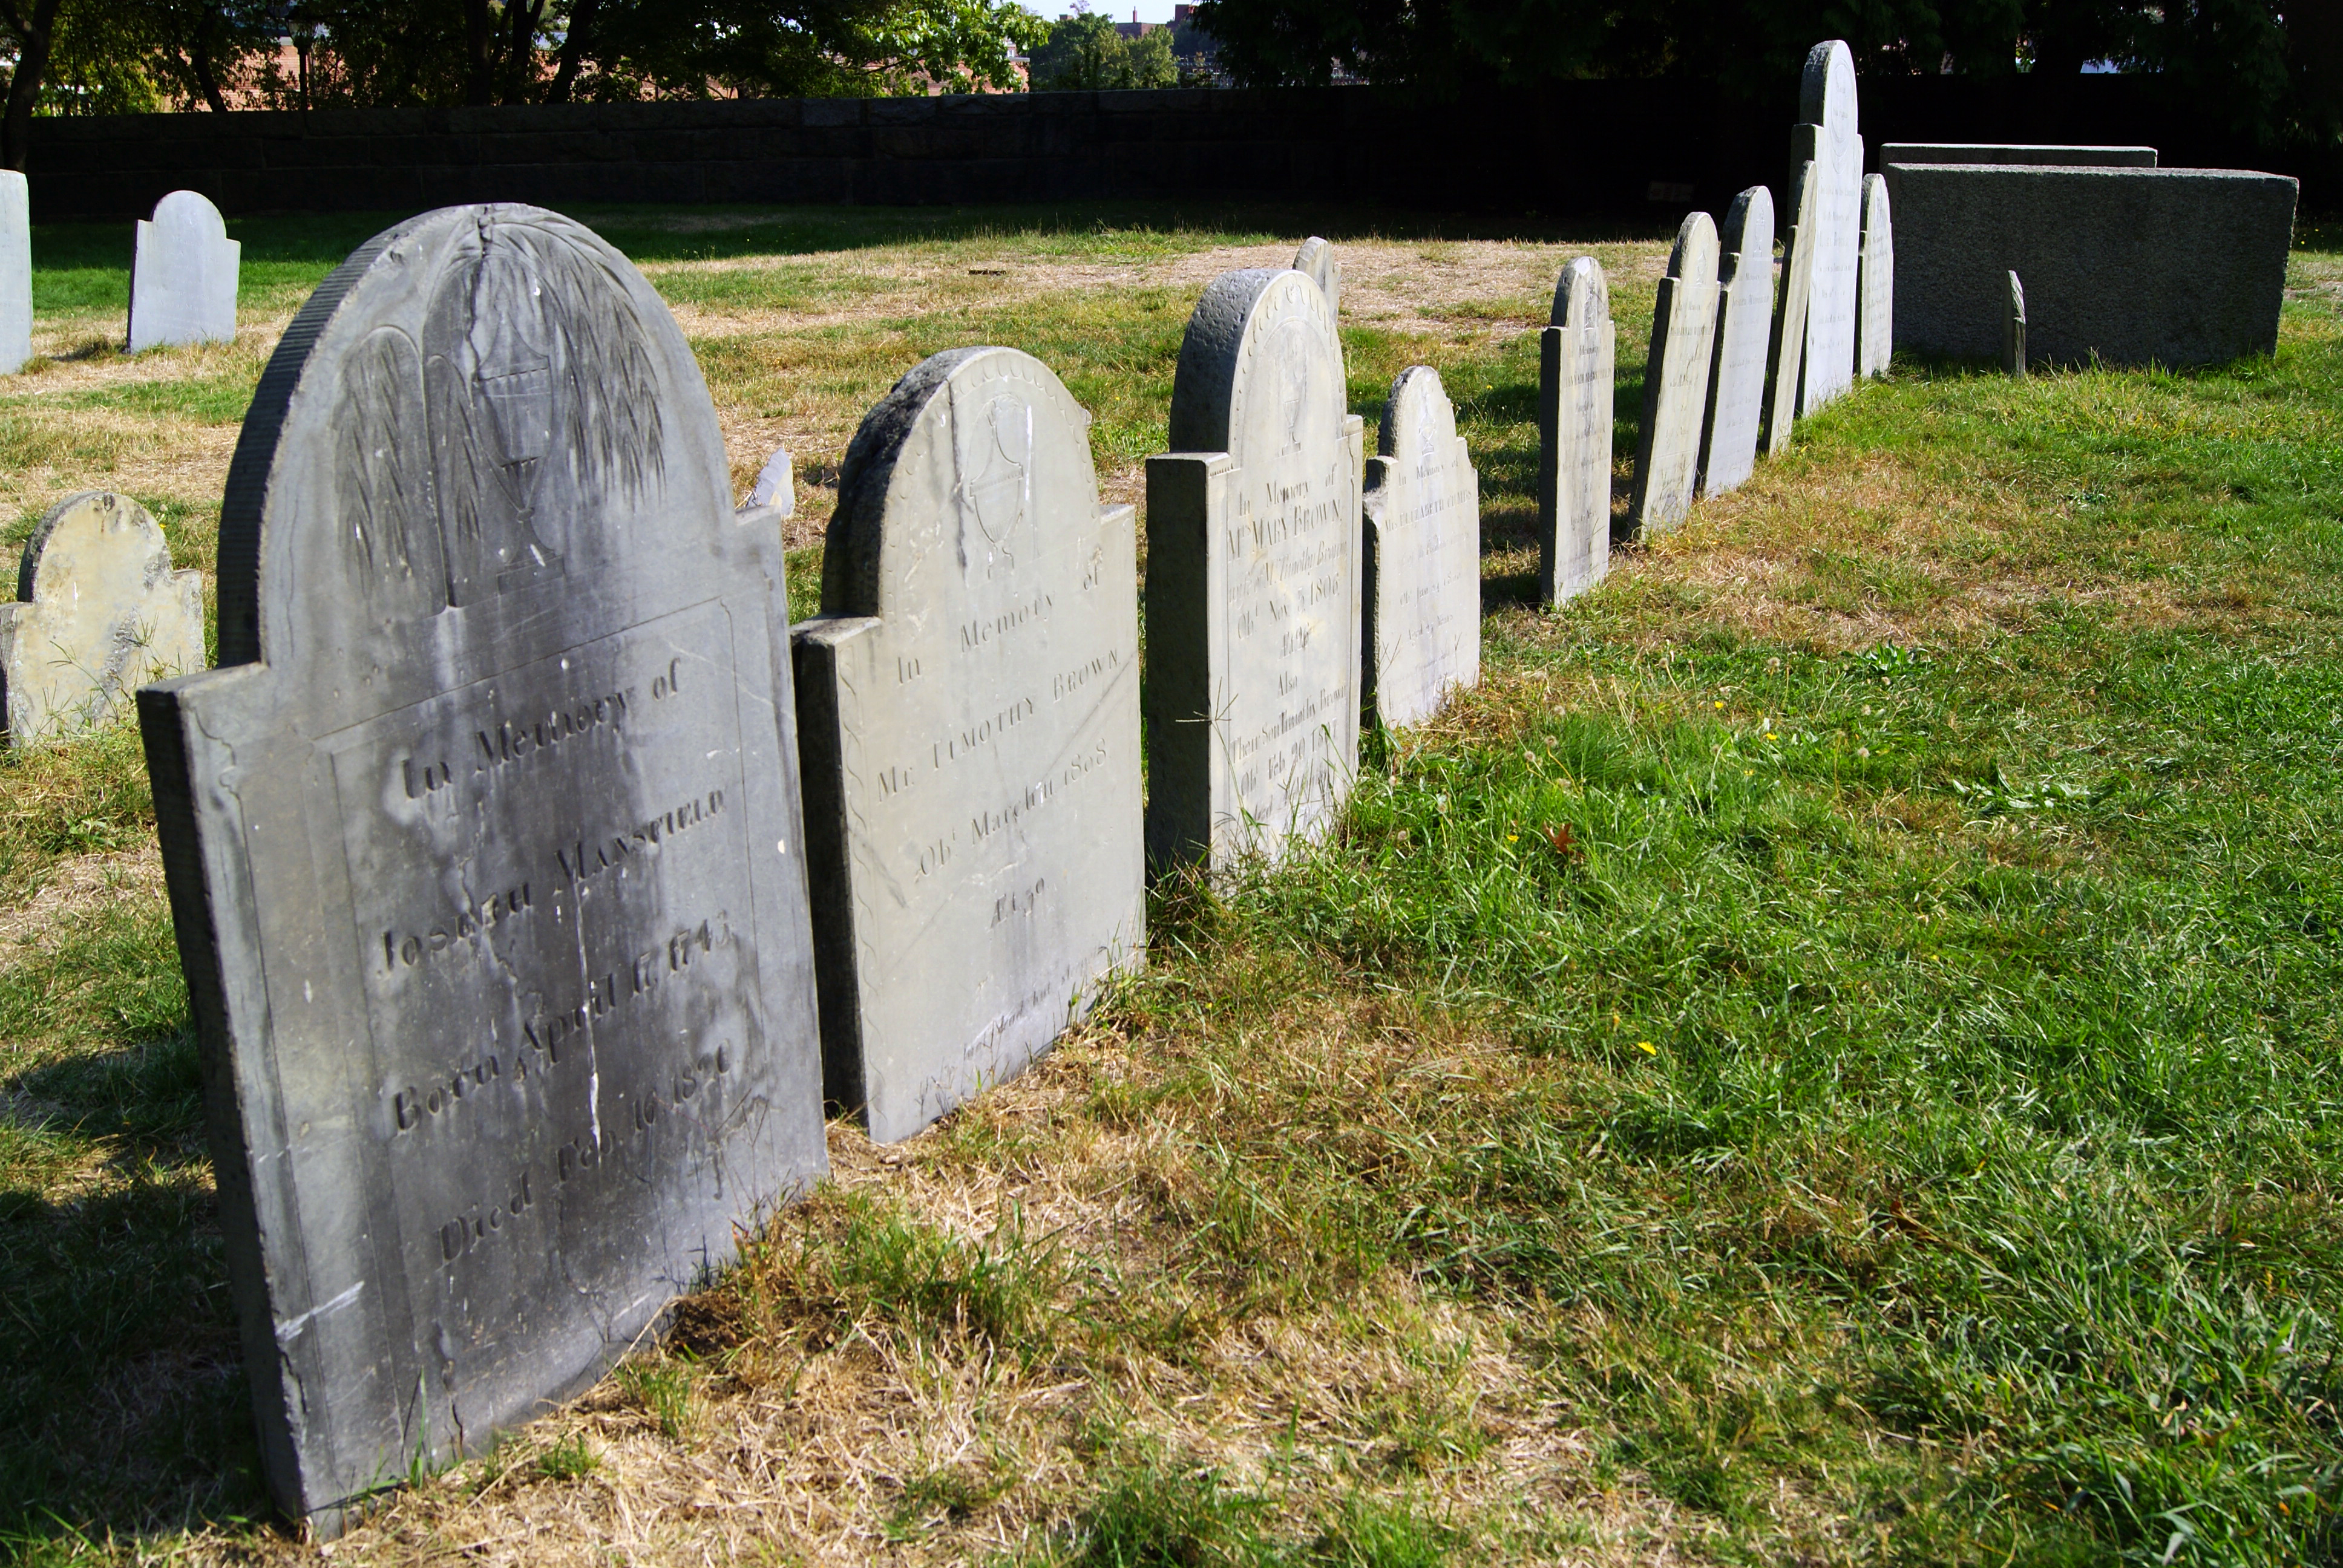 Headstones, Ancient, Religious, History, Marker, HQ Photo